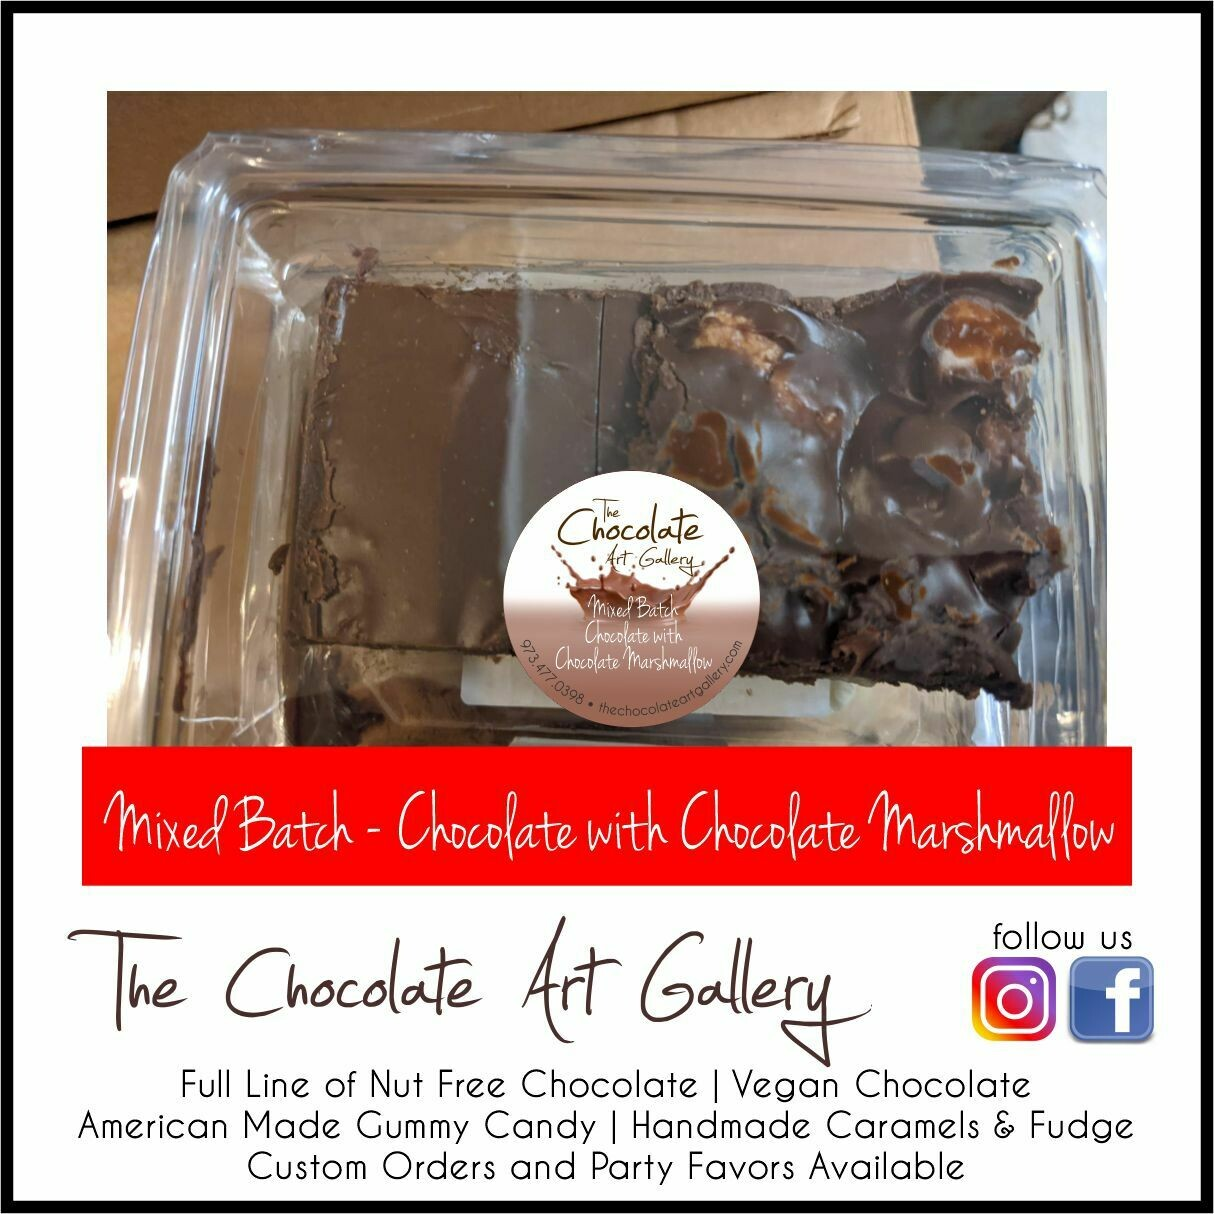 Mixed Batch - Chocolate with Chocolate Marshmallow (8 oz)